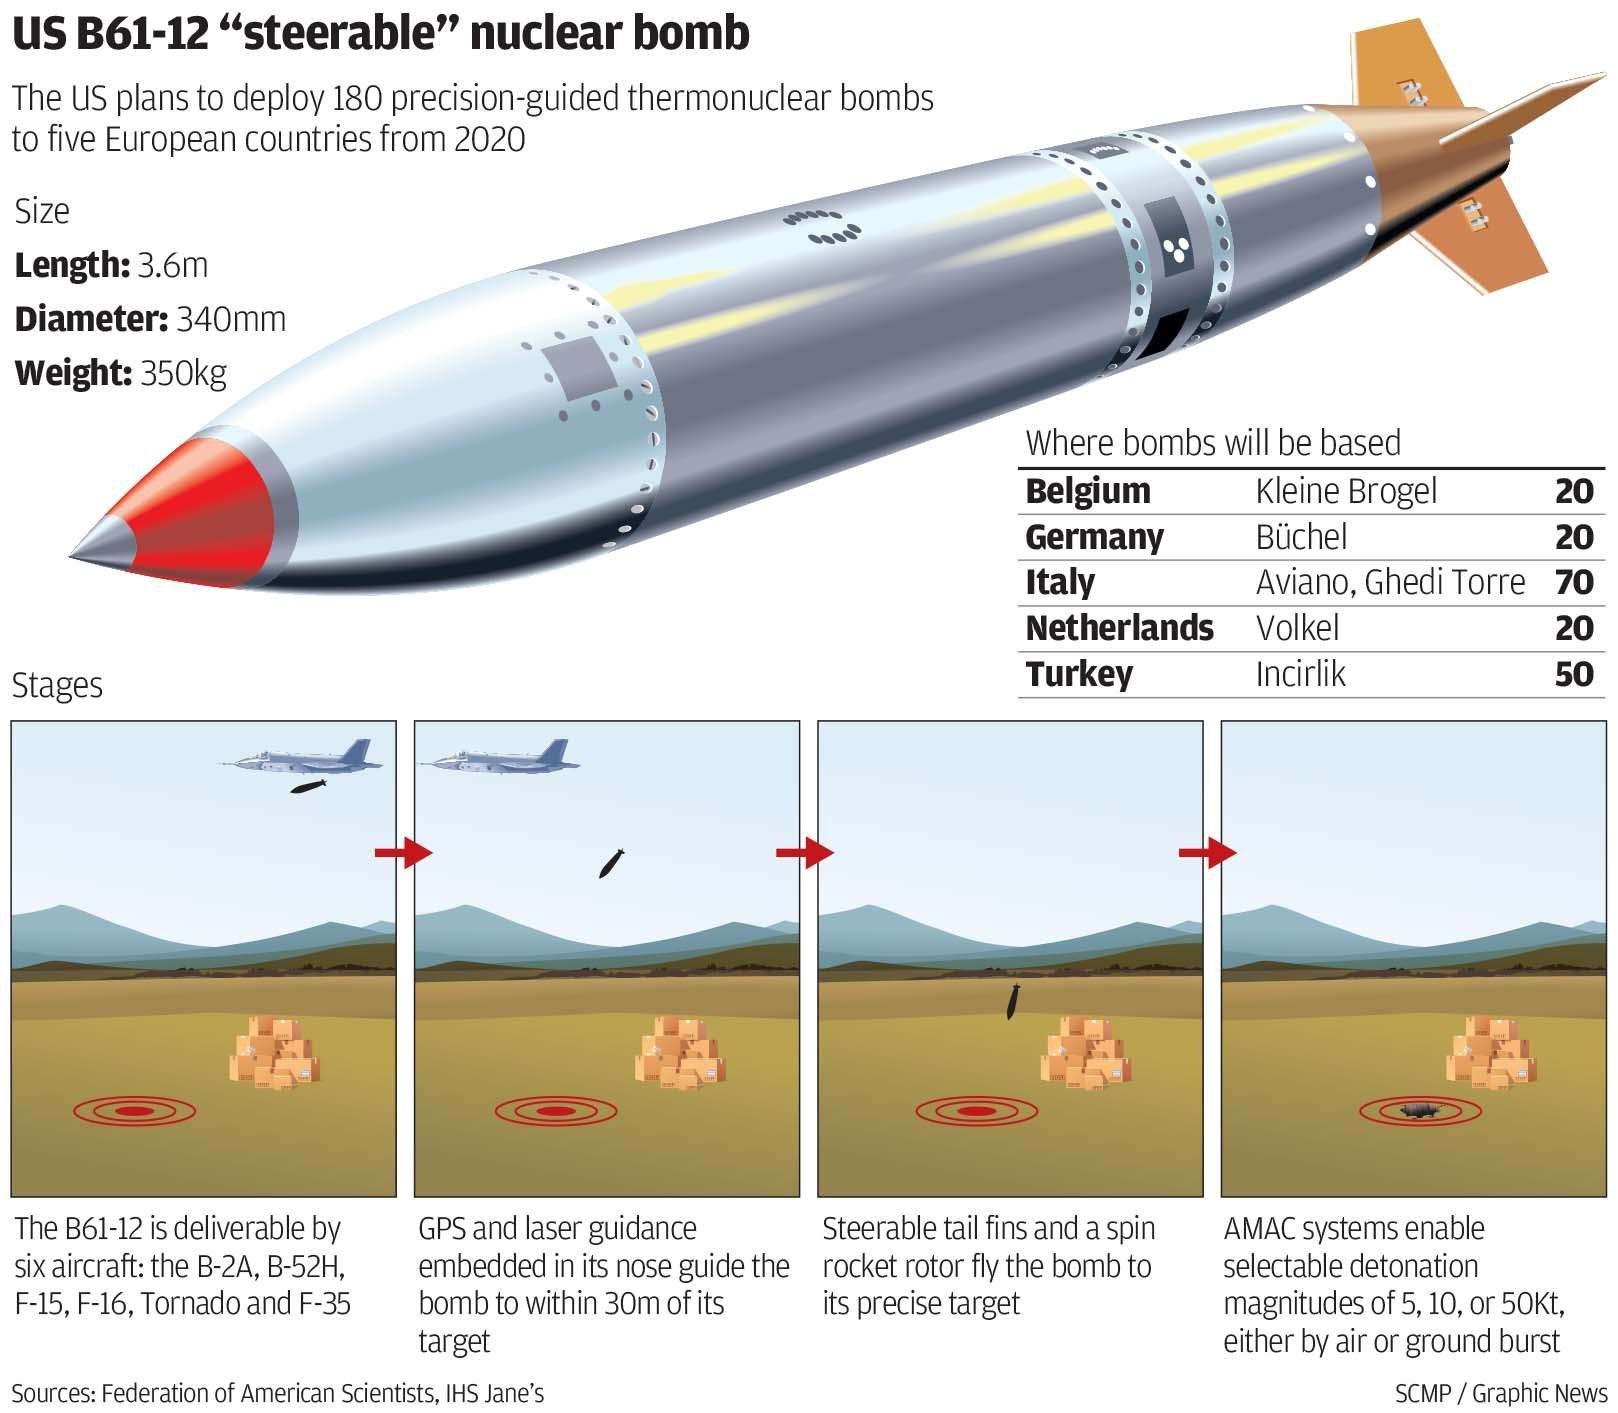 The next generation of aircraft deliverable nuclear bombs in the first leg of the U.S. nuclear triad.